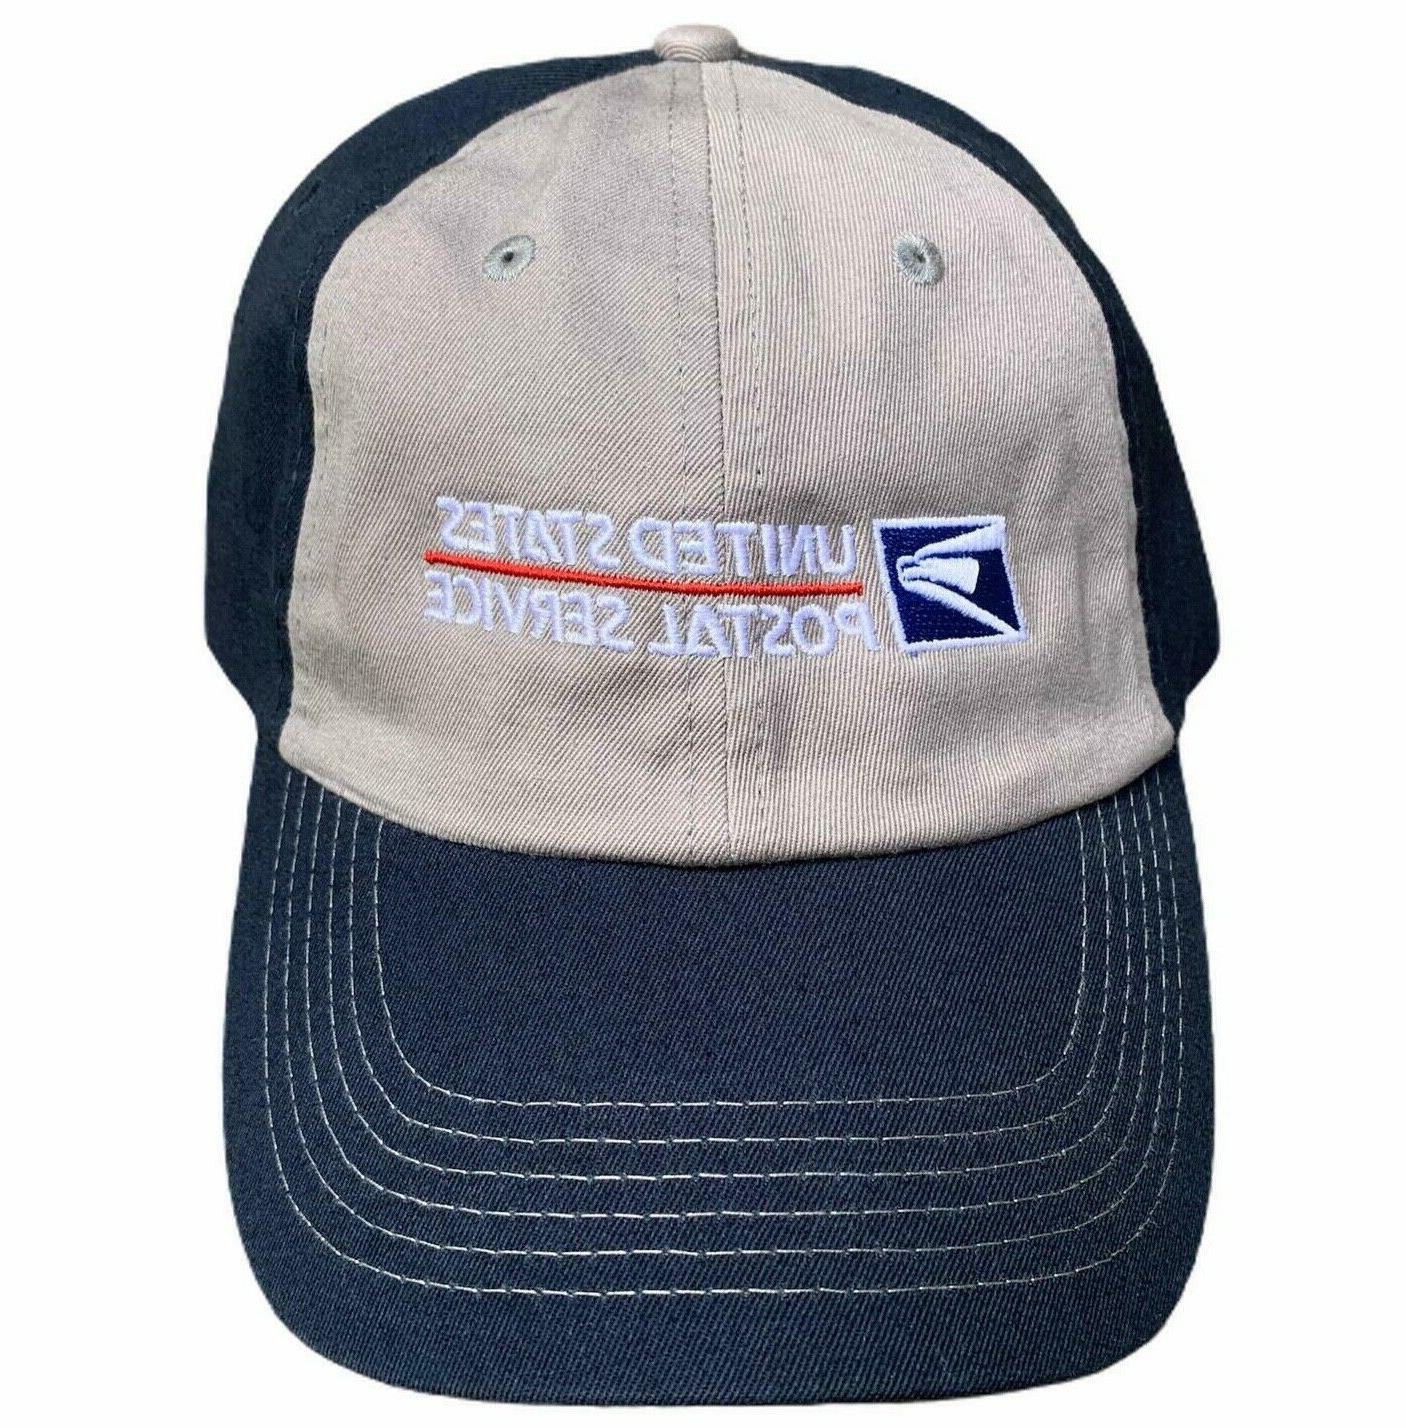 USPS Color Adjustable States Service Blue and